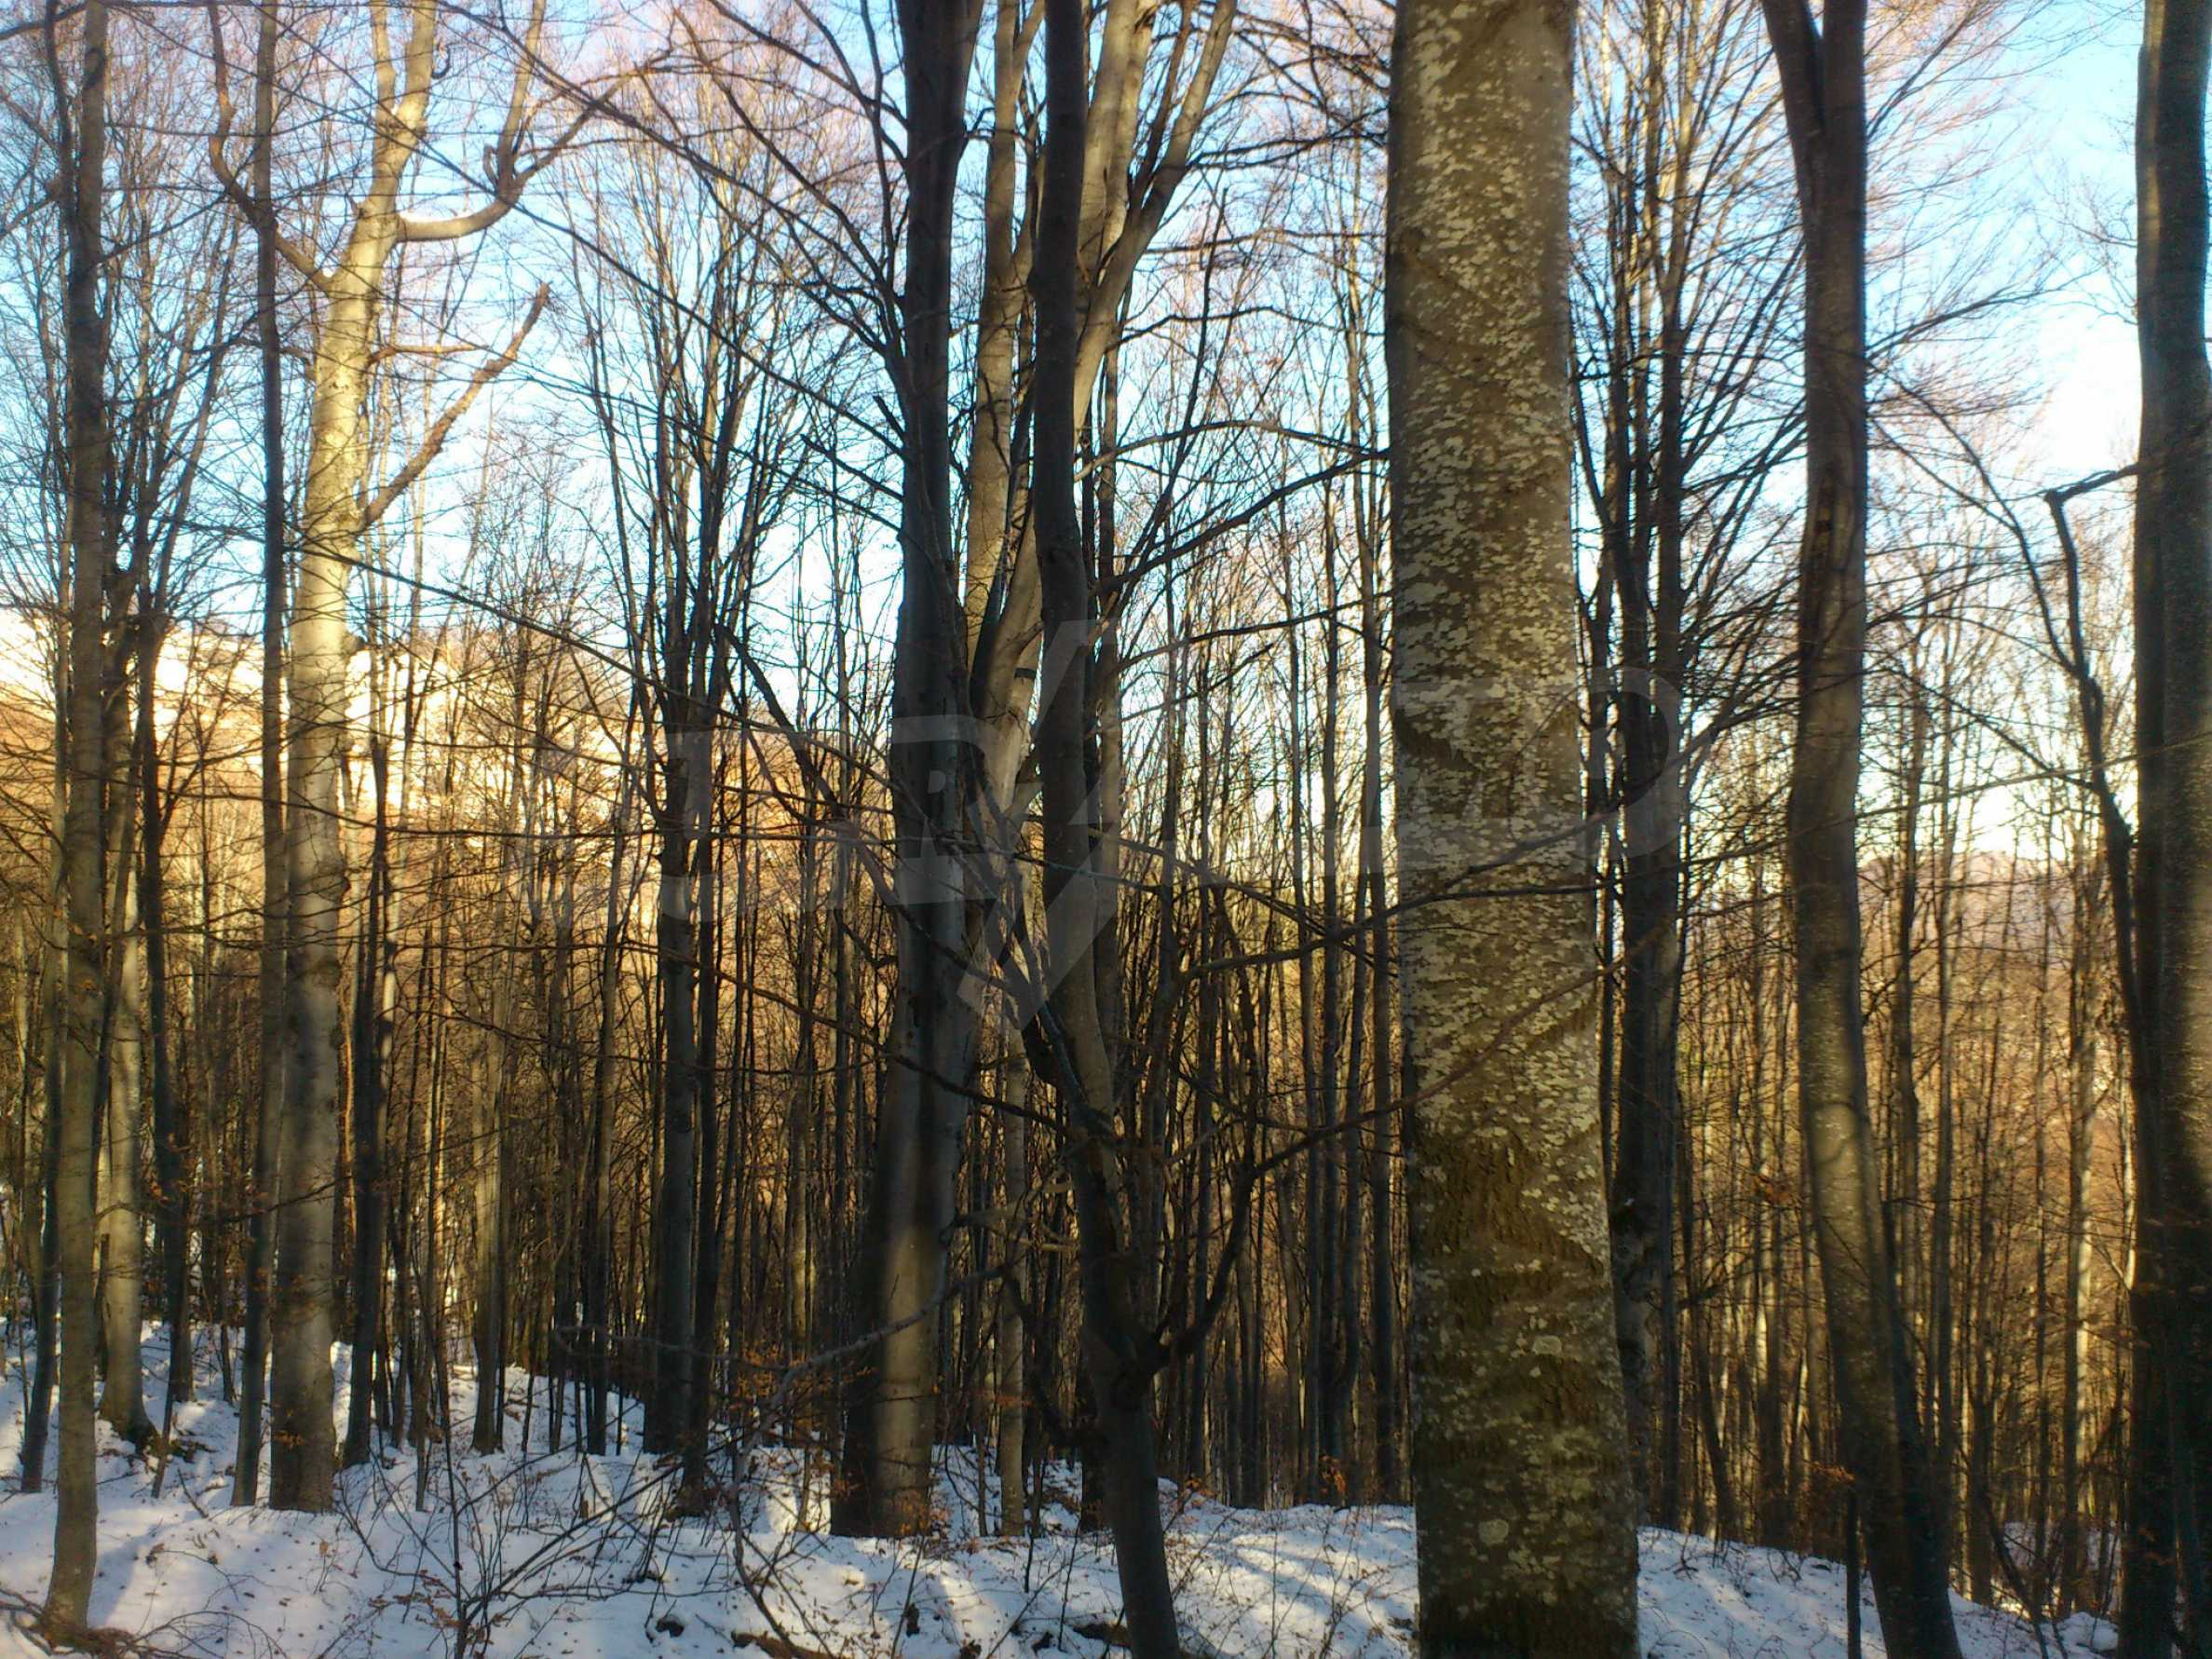 Deciduous forest near Aprilci 12